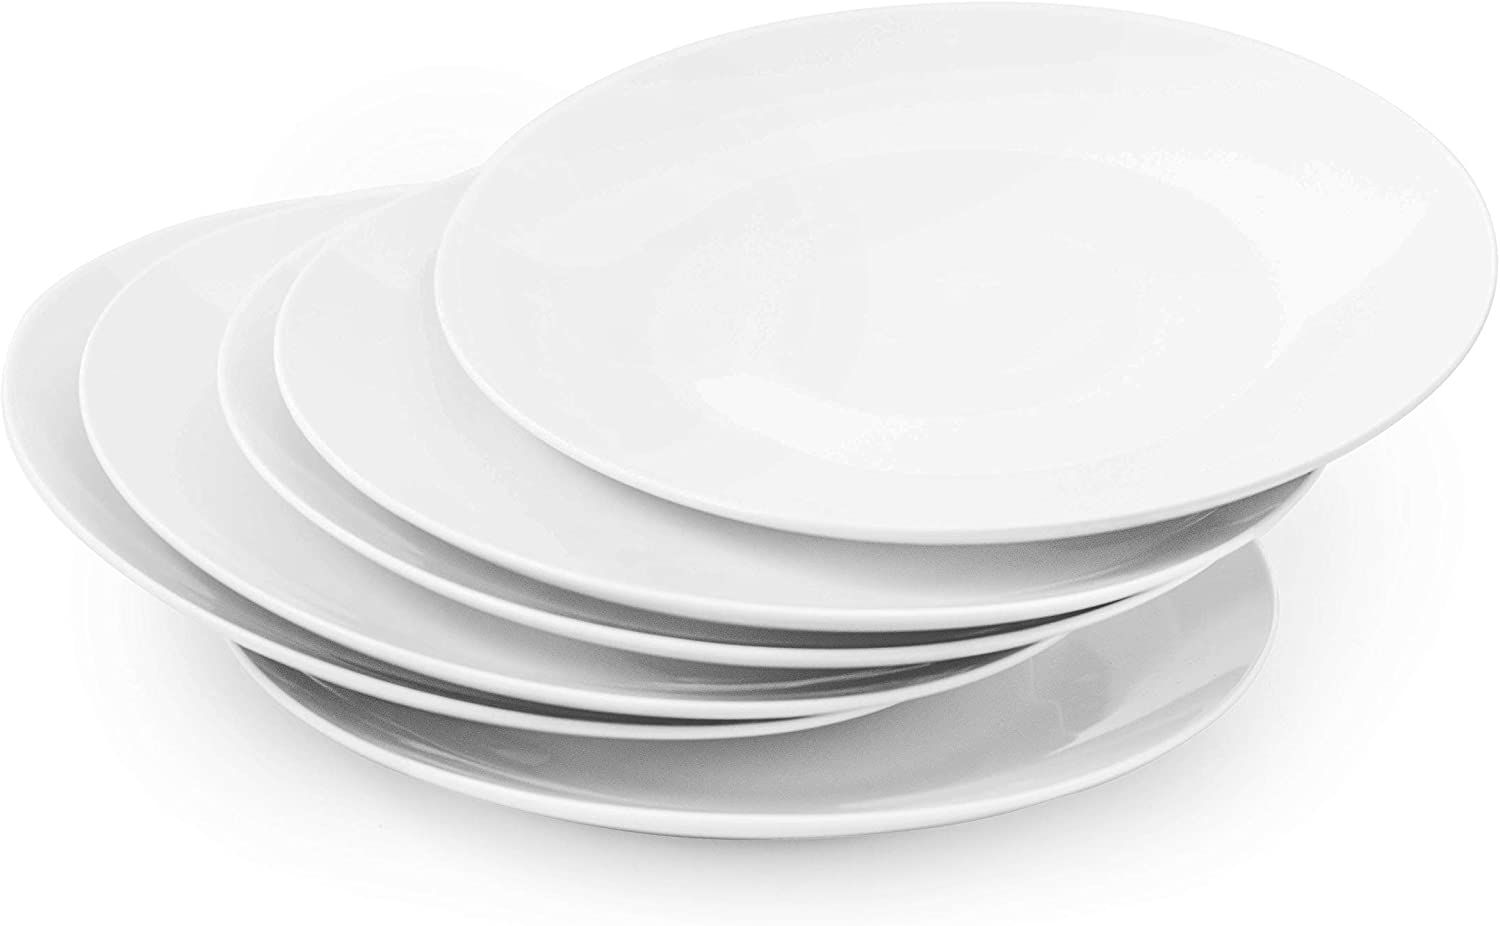 Amuse- Professional Gourmet Coupe Dinner Plate-10.5''- Set of 6